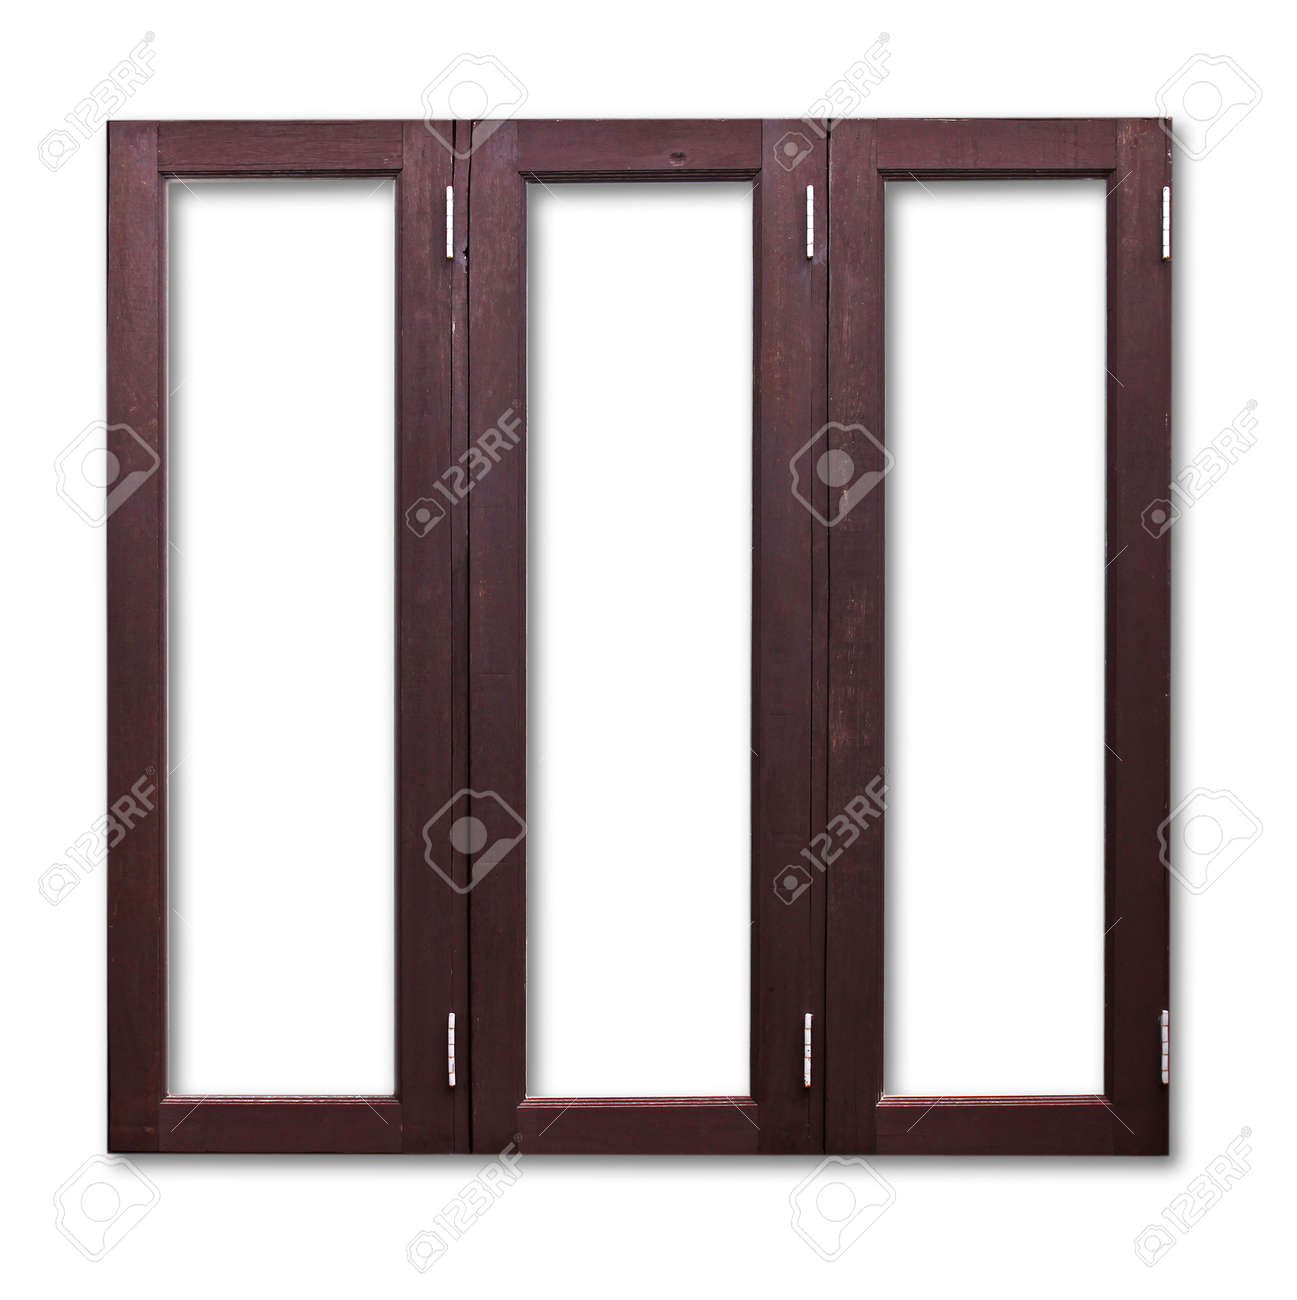 Isolated wooden window frame Stock Photo - 10170271